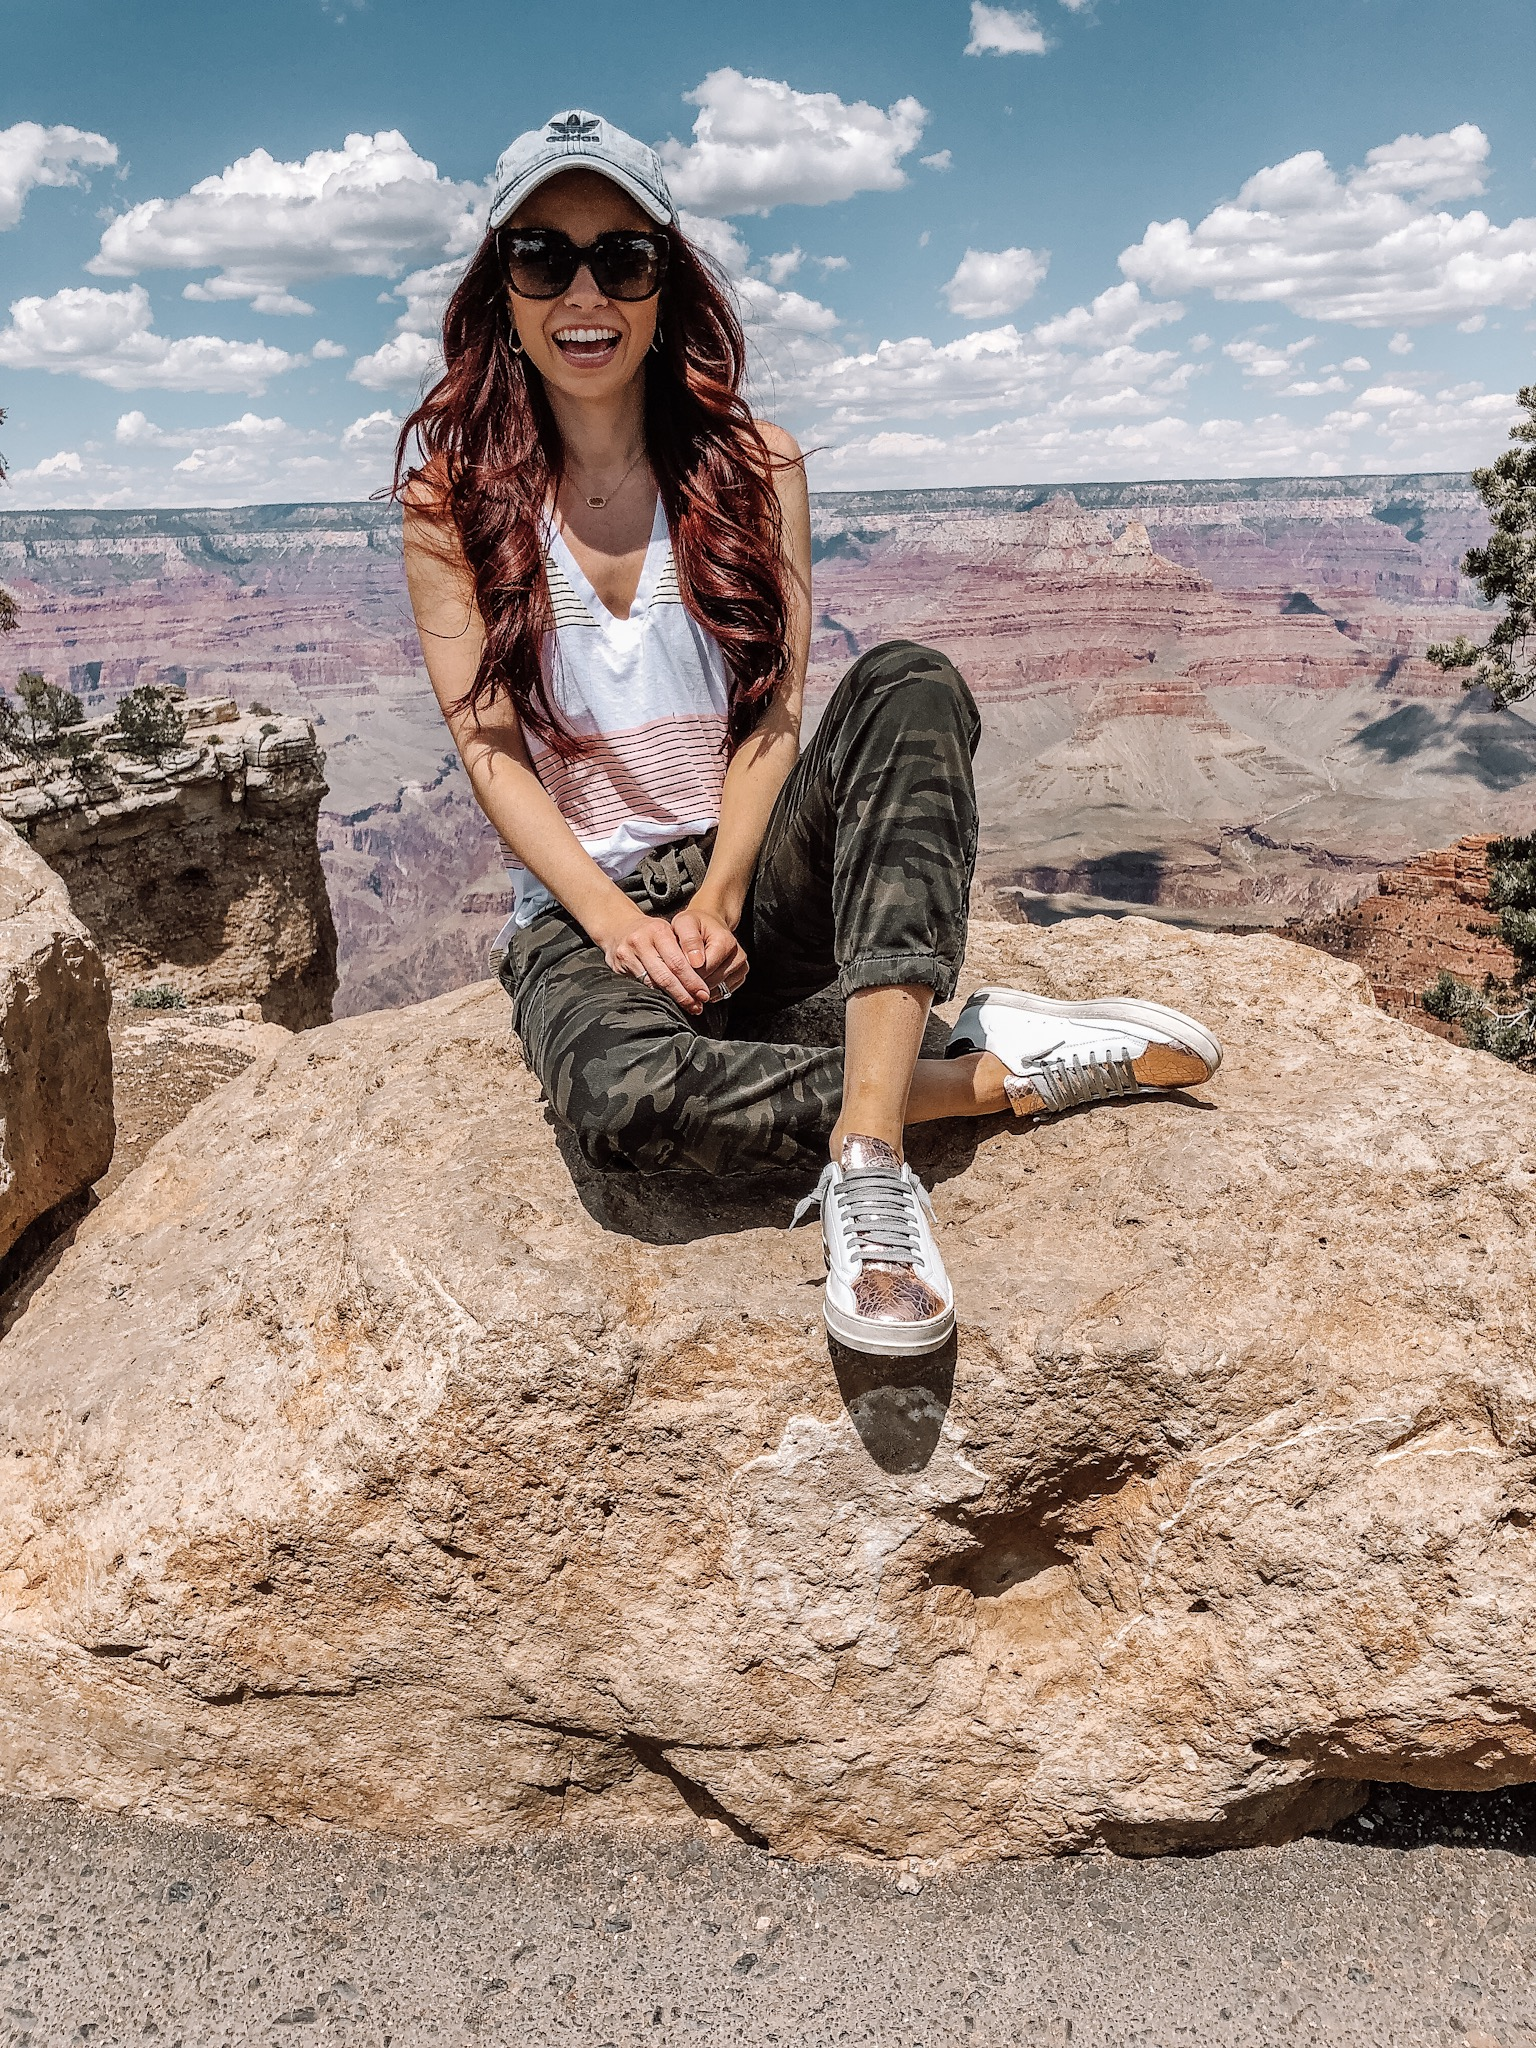 SHOP MY GRAND CANYON OUTFIT:    Tank  ||  Camo Troopers  ||  Sneakers  ||  Dr. Tavel Sunnies  ||  Hat